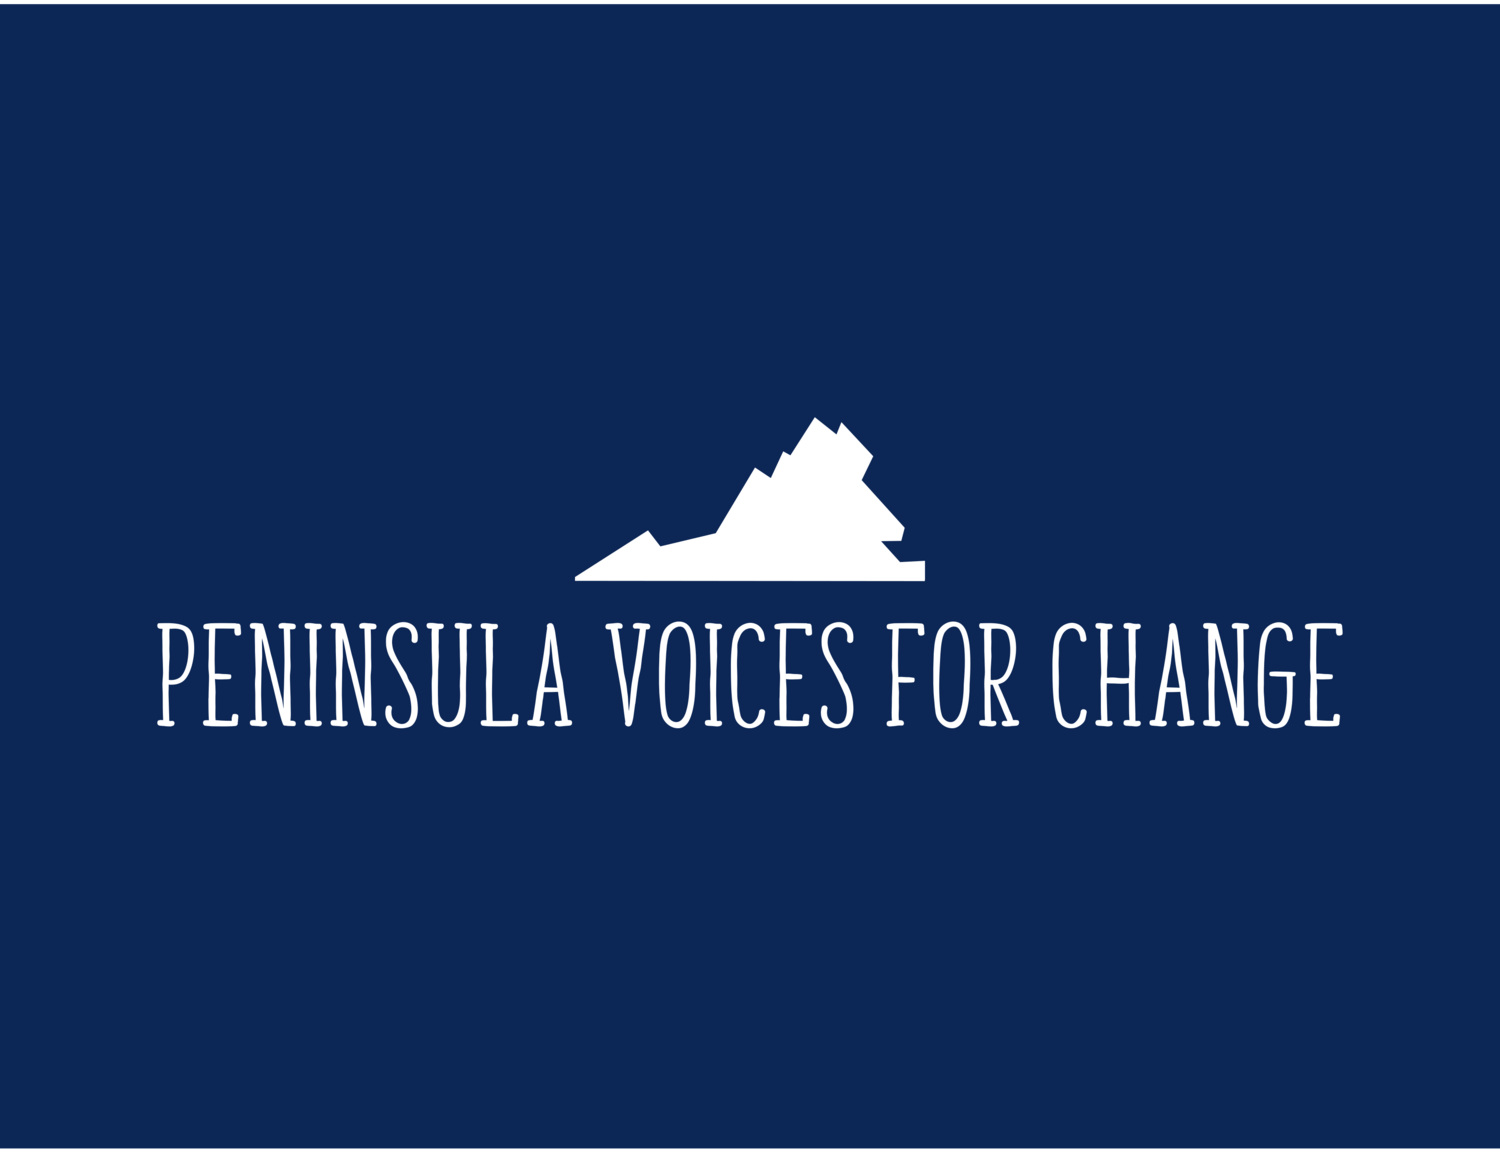 Peninsula Voices for Change